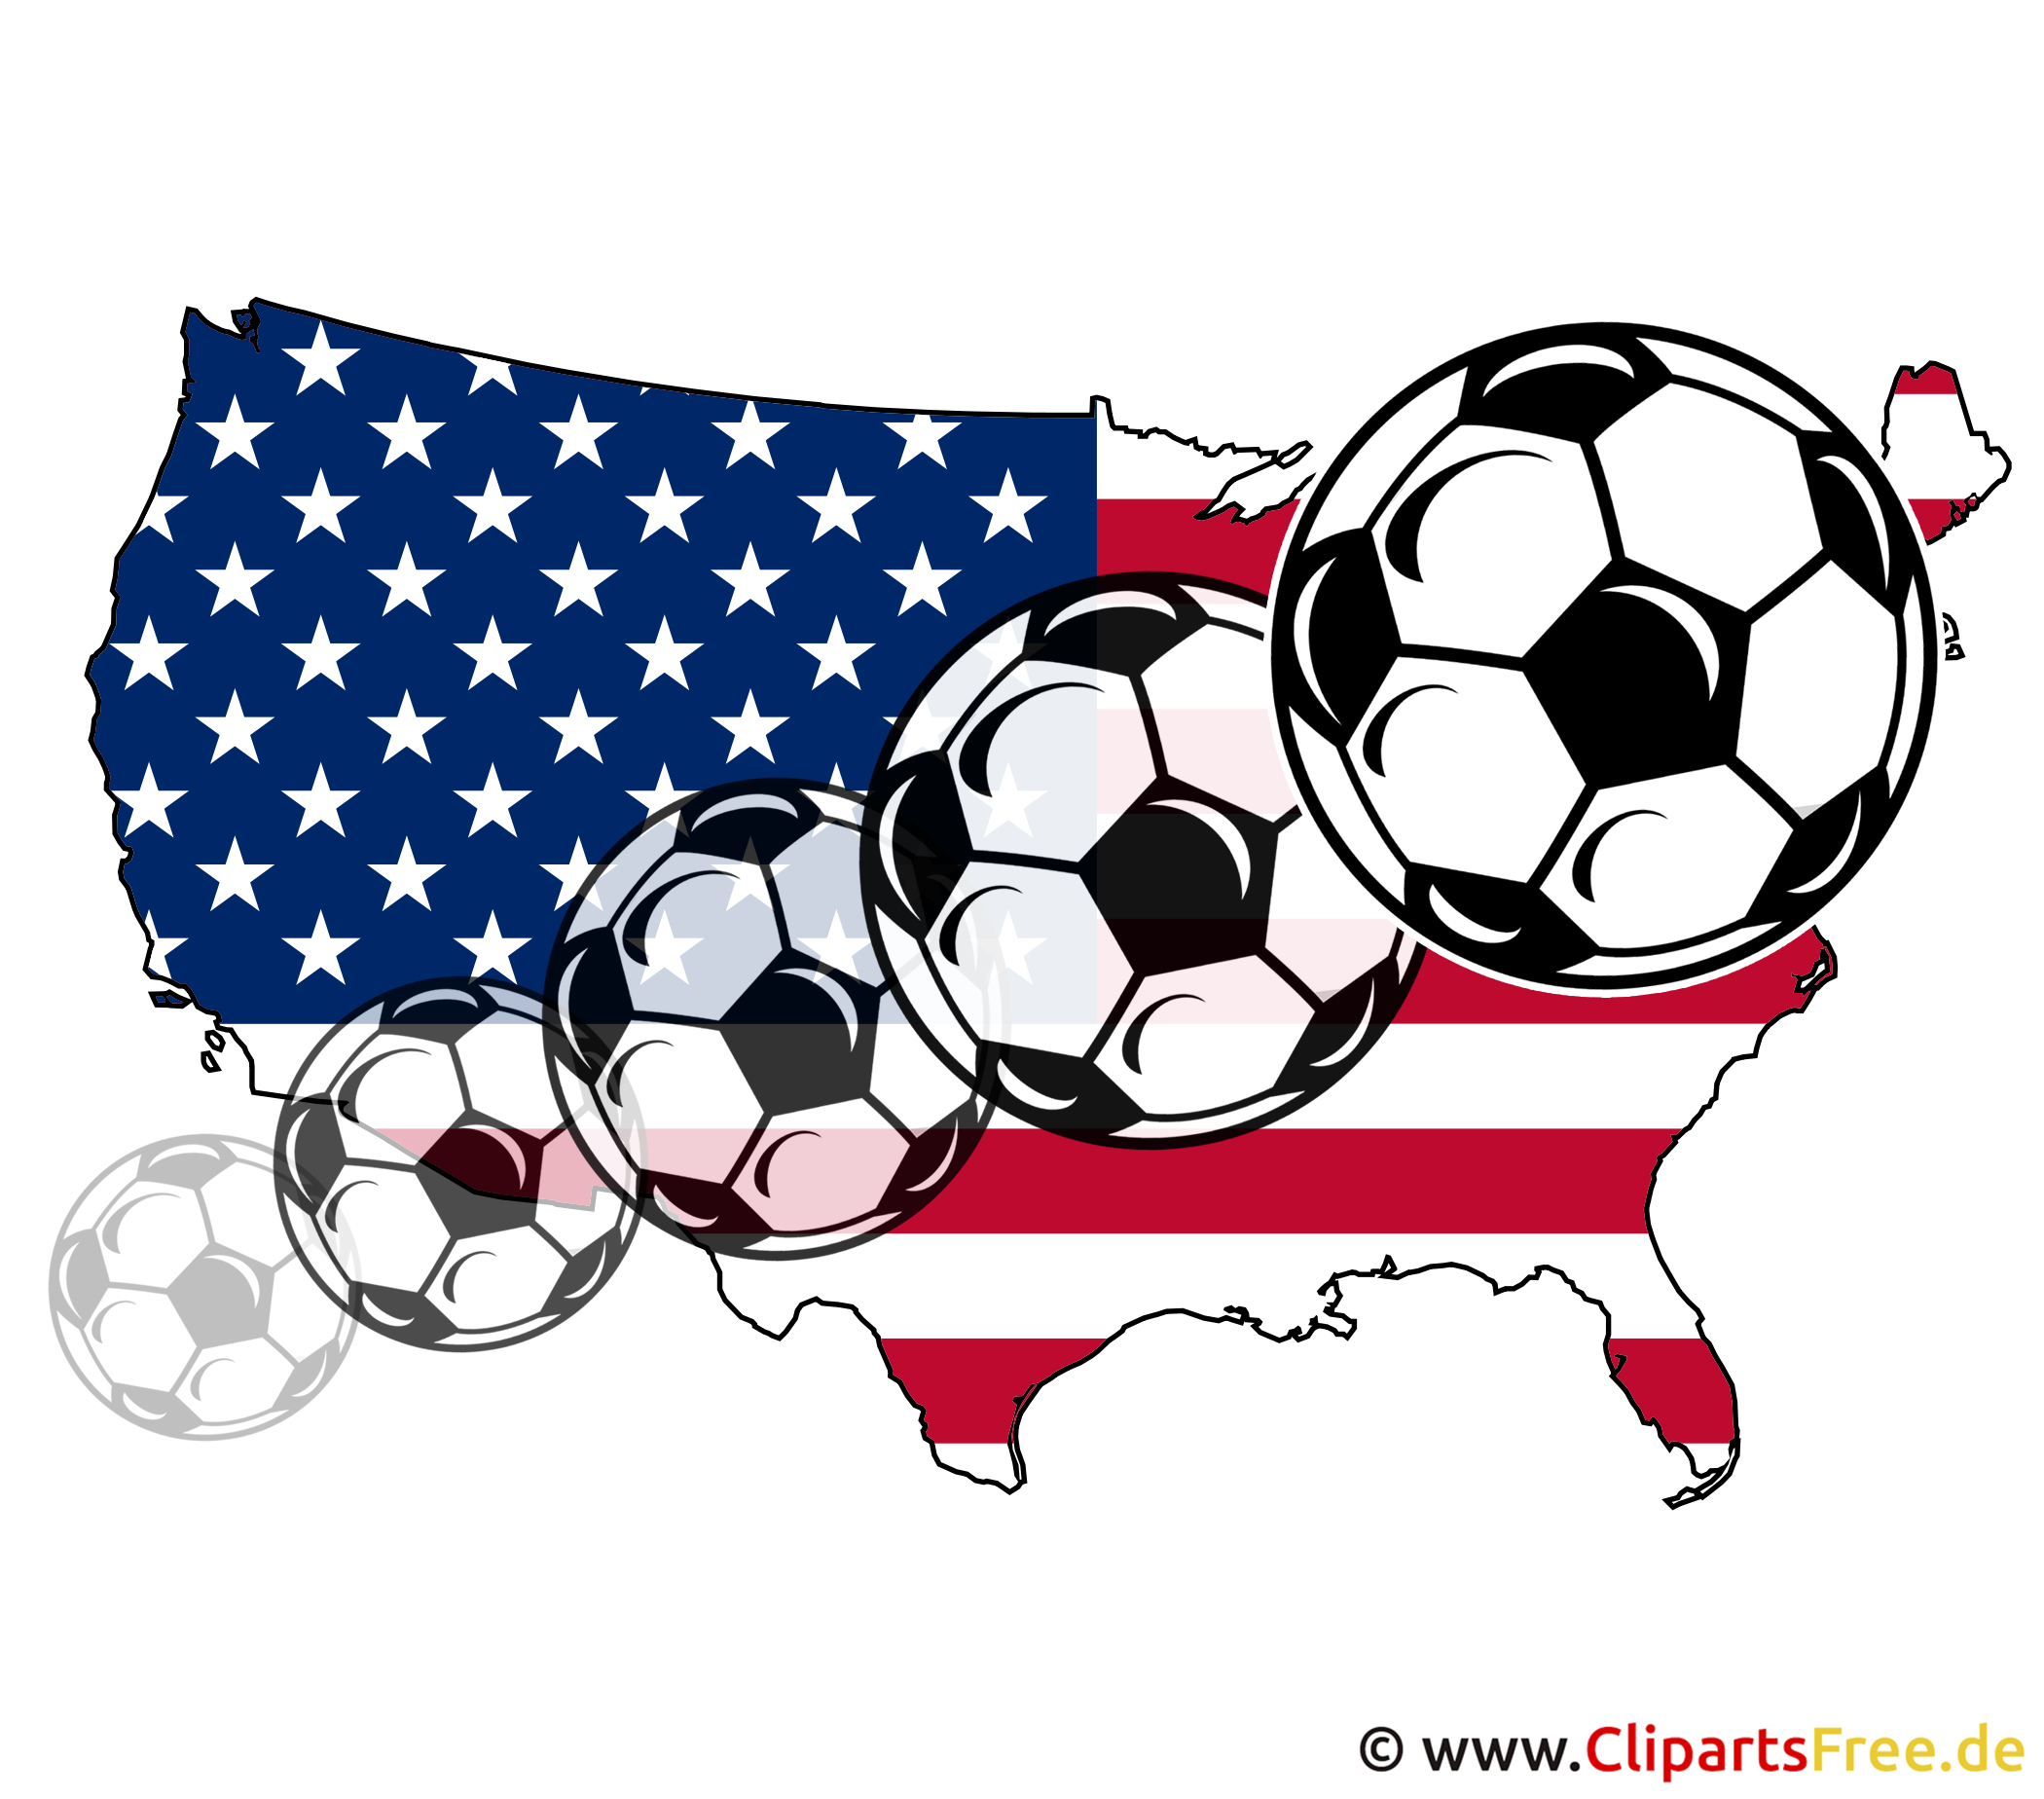 USA Map with flying Soccer Balls Image